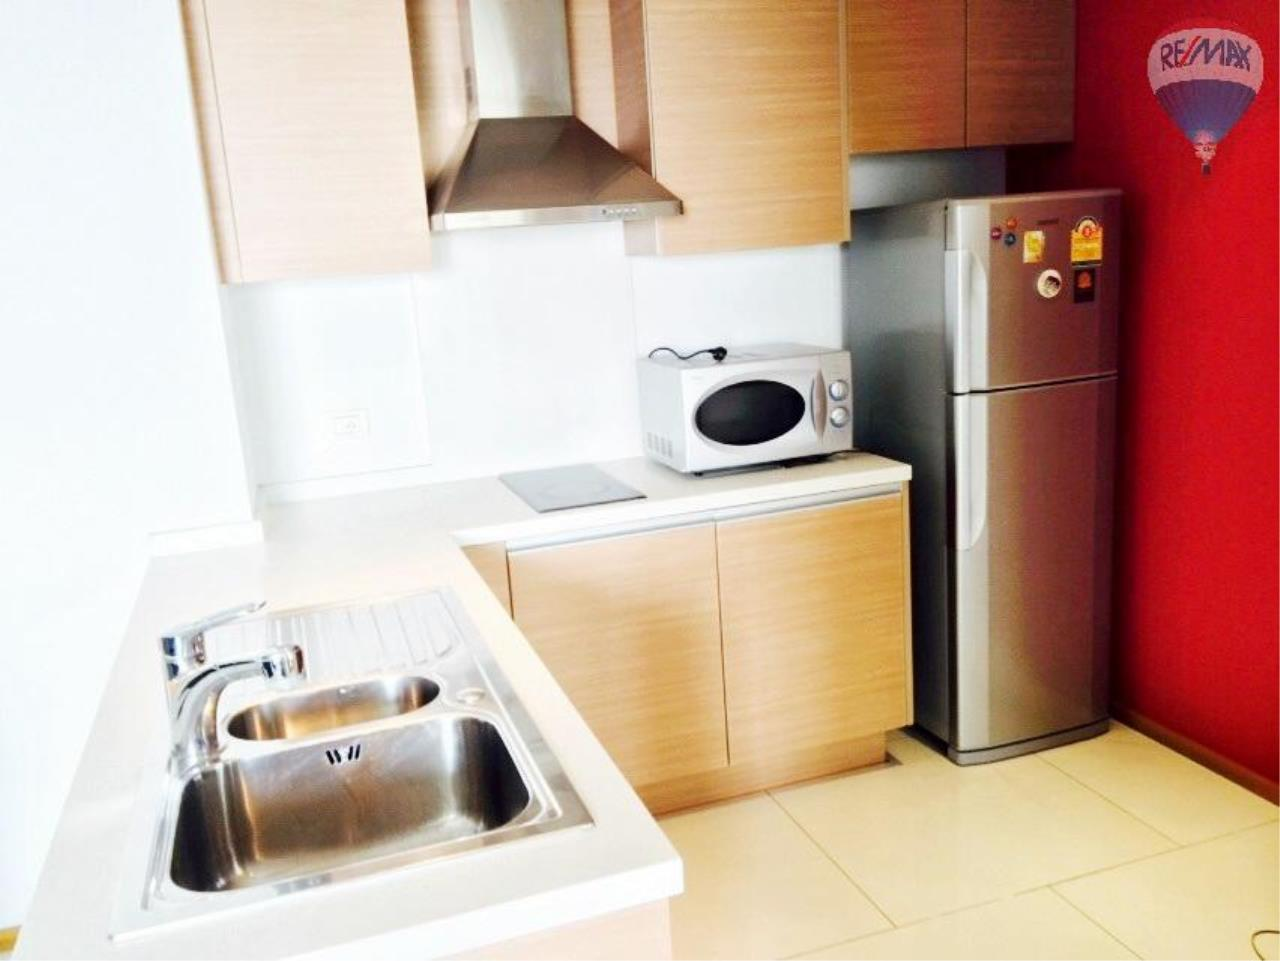 RE/MAX Properties Agency's Condominium for sale 1 bedroom 65 Sq.m. at Emporio Place 1